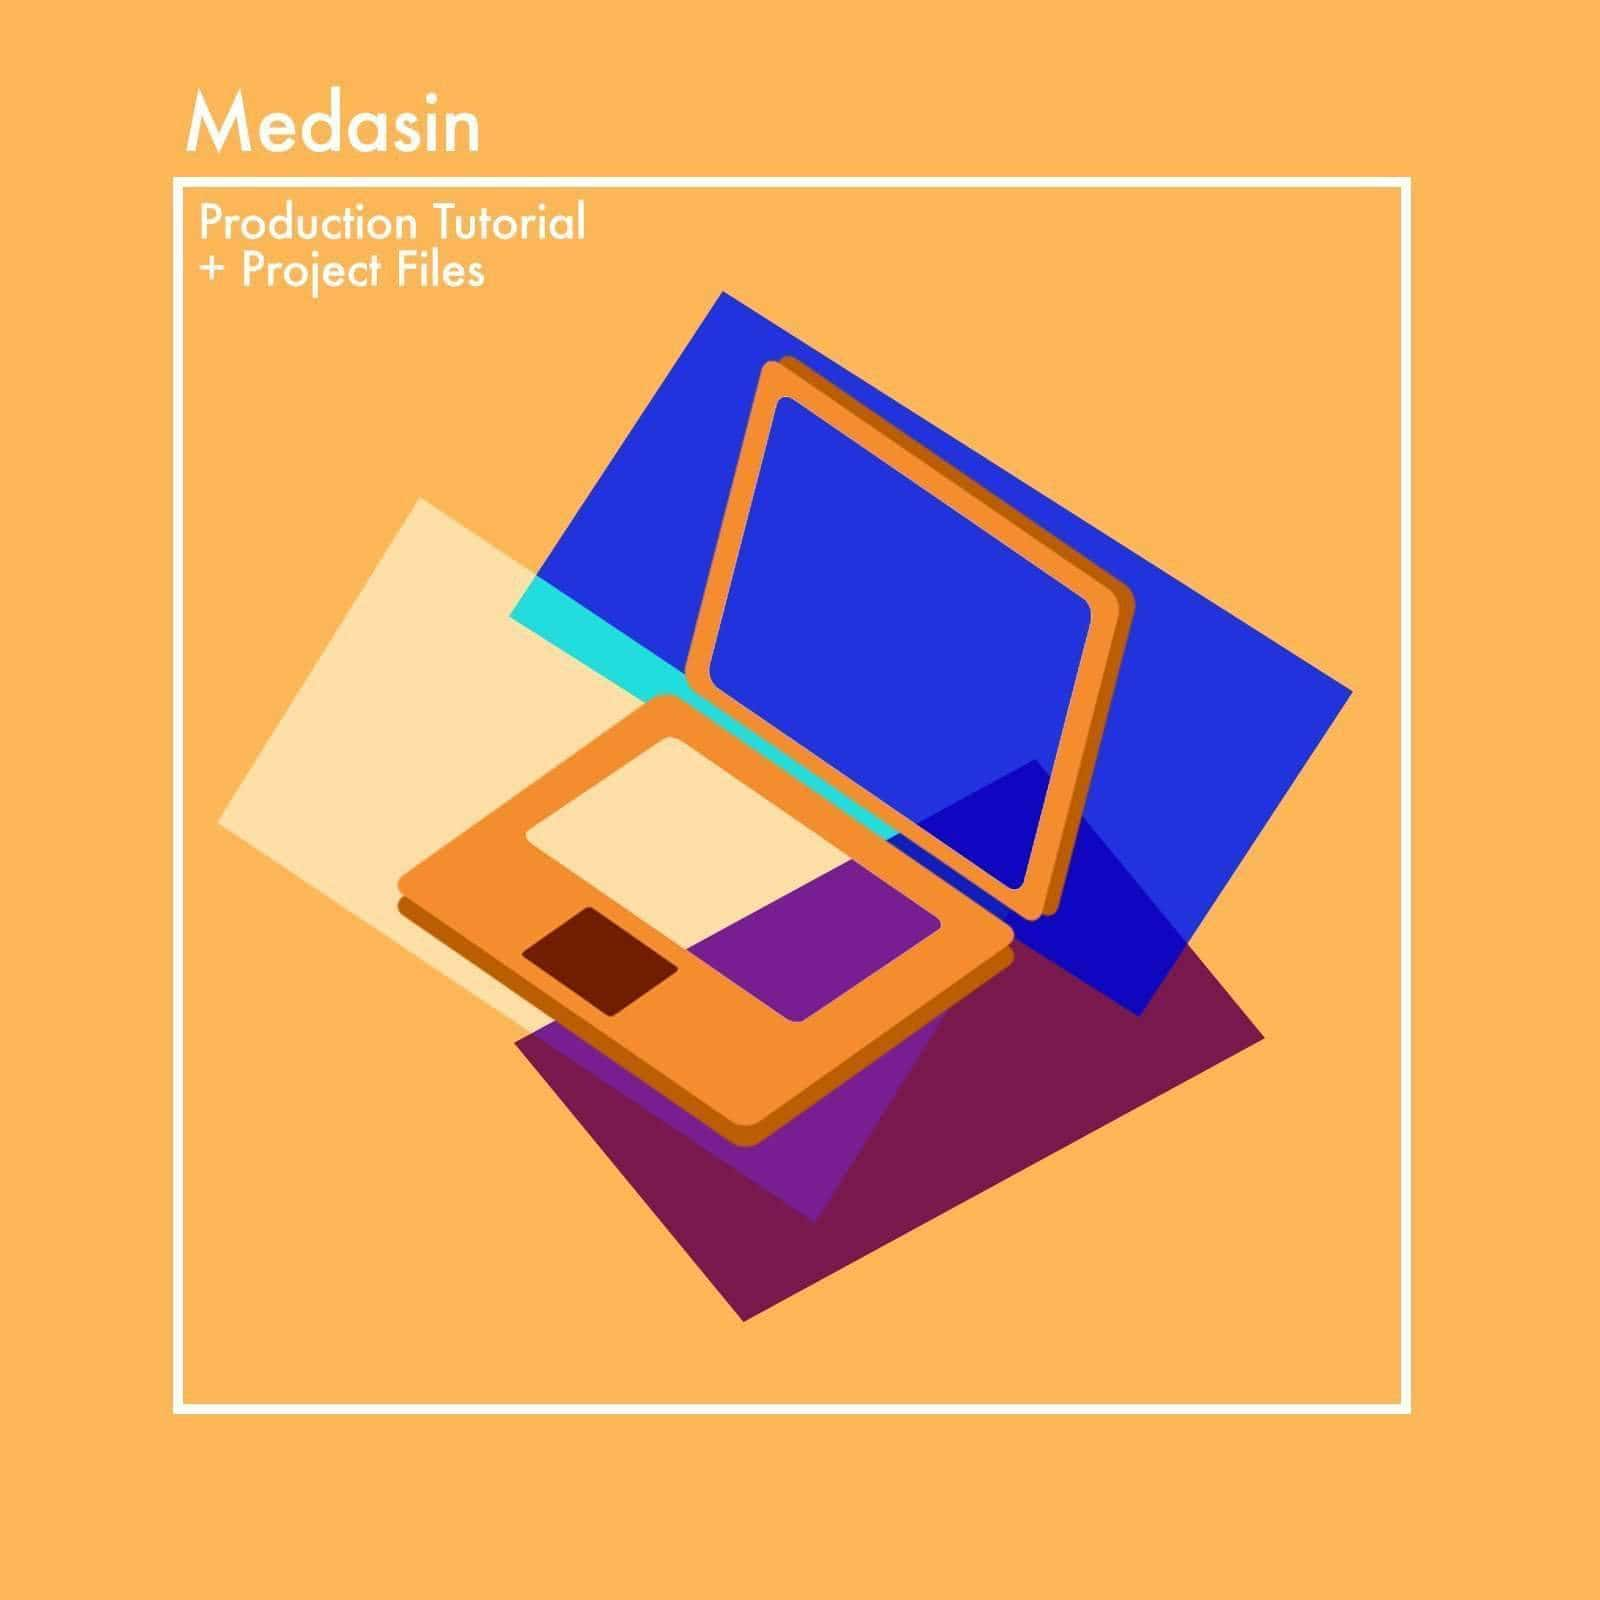 Medasin Production Tutorial and Project Files Samplified